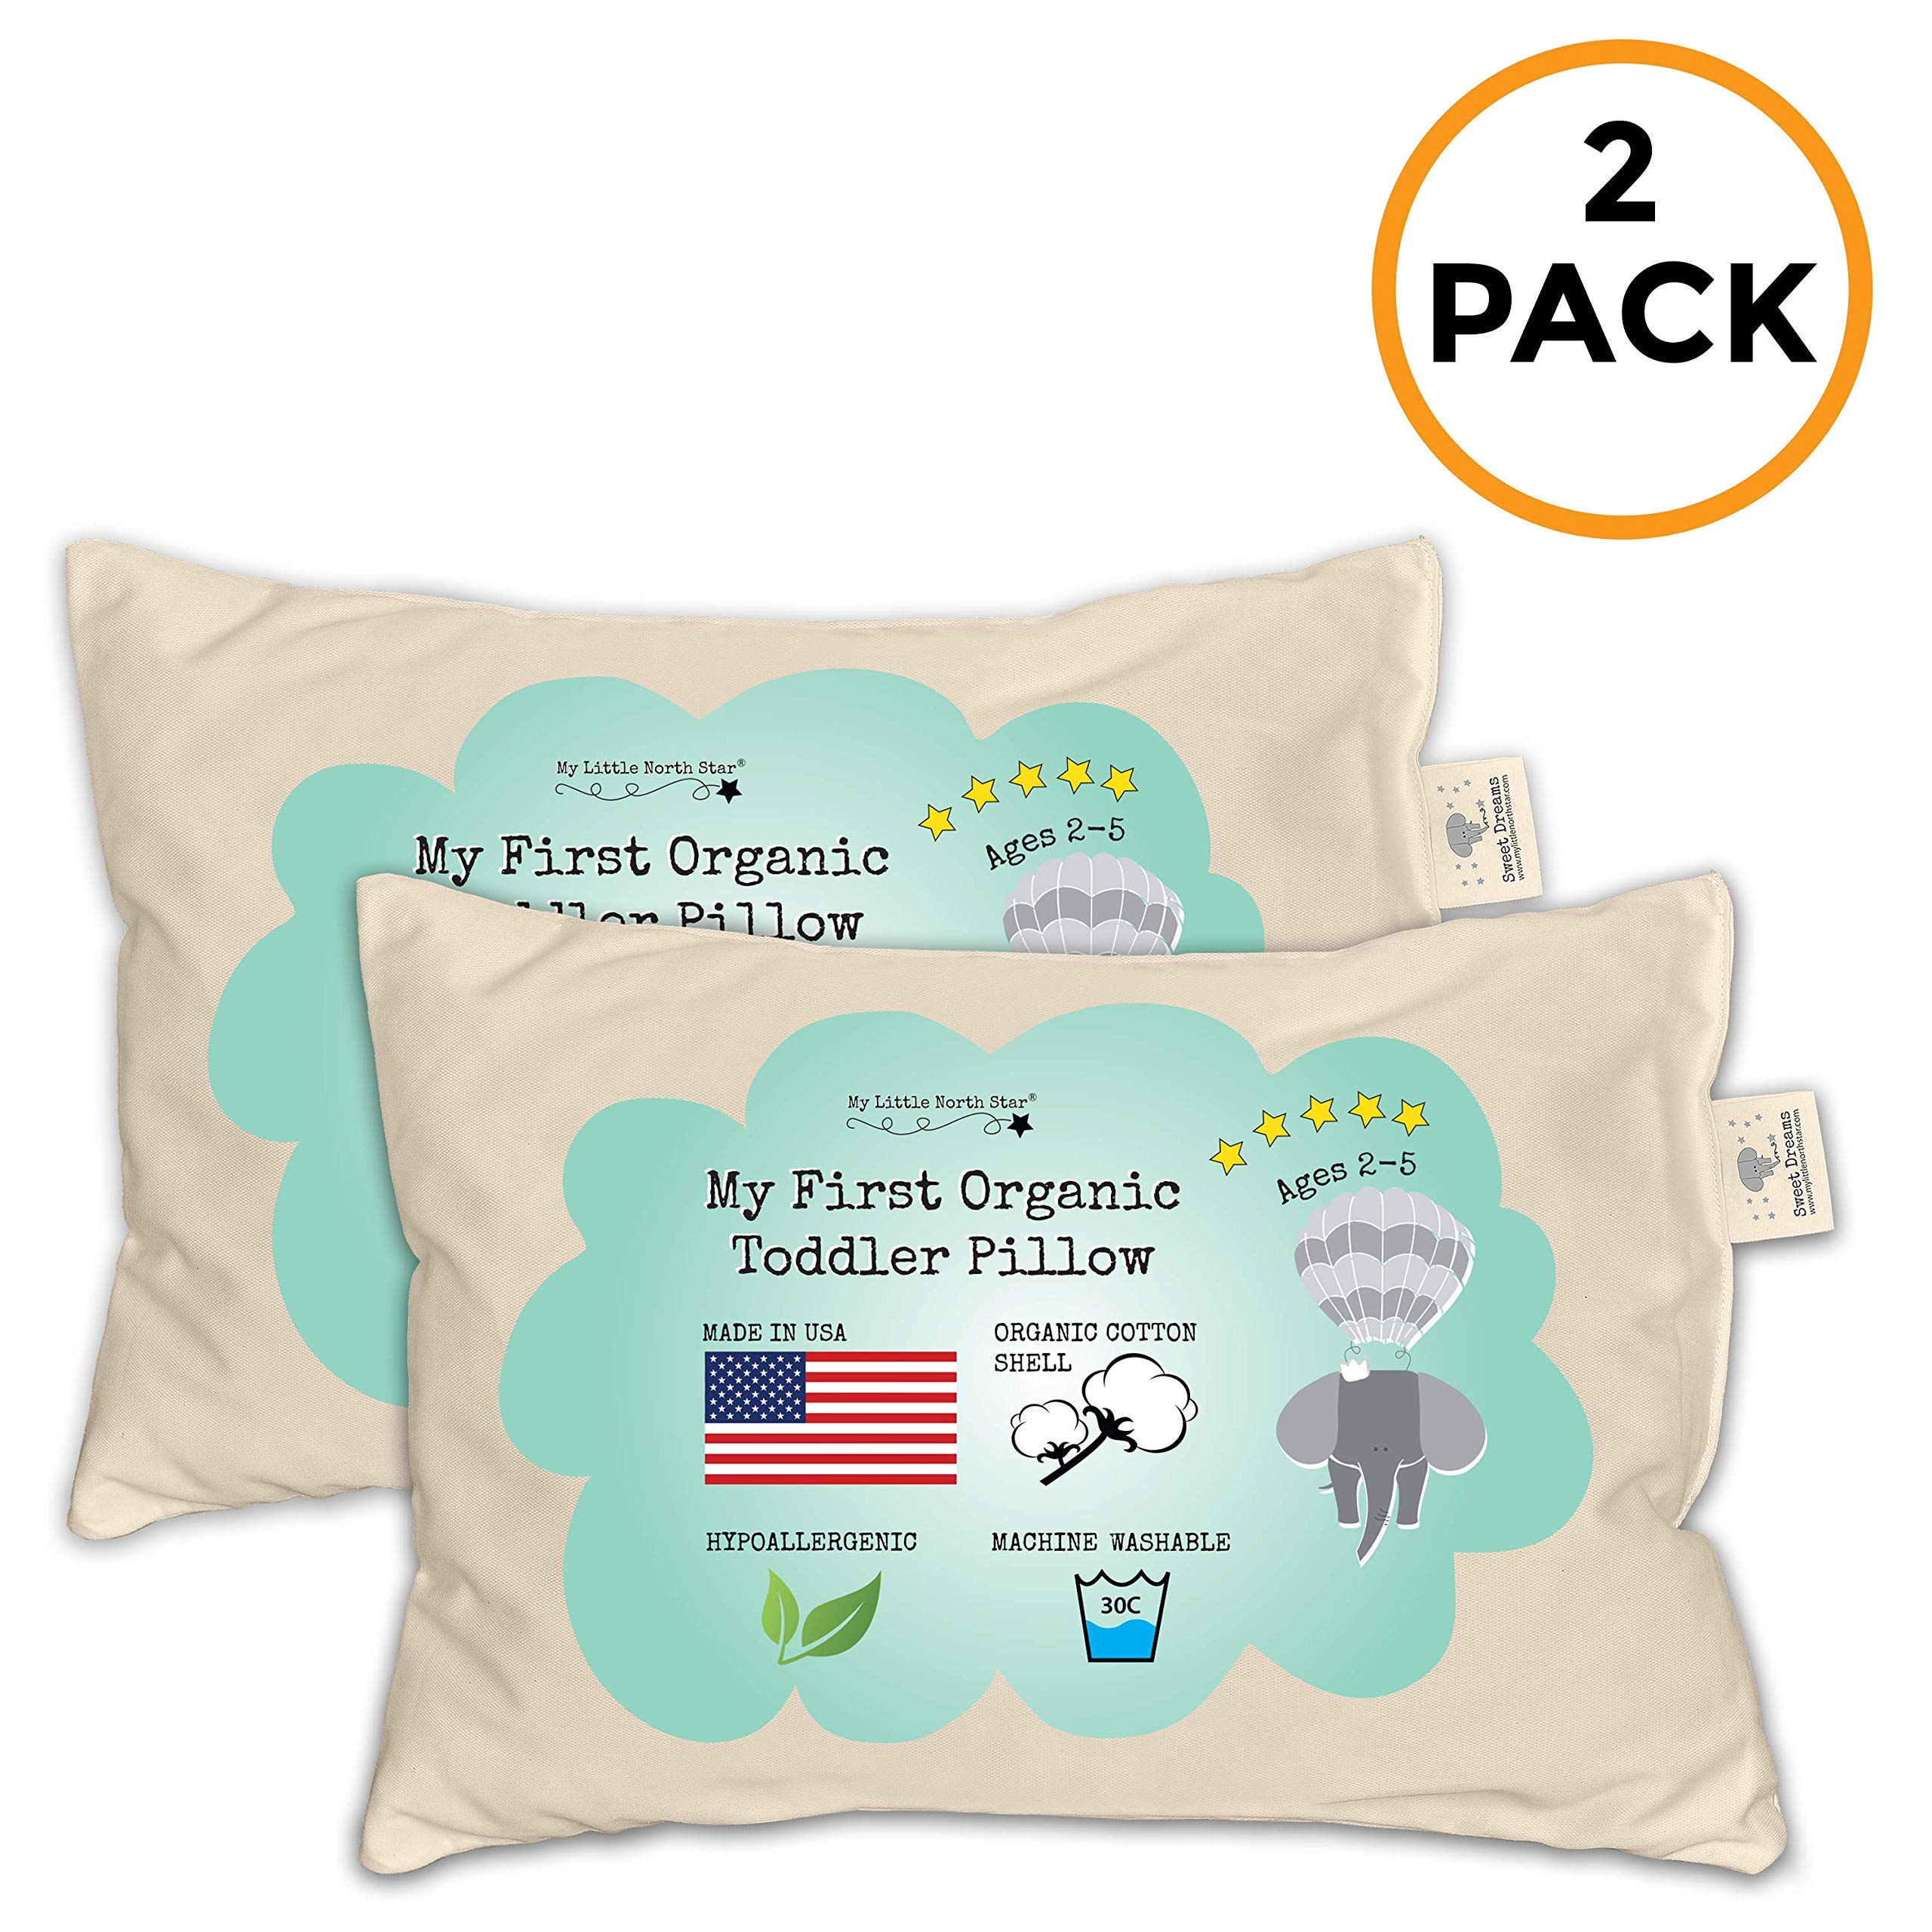 Toddler Pillow - Organic Cotton Made in USA - Hypoallergenic Washable Unisex Kids Pillow - 13X18-2 Pack by My Little North Star